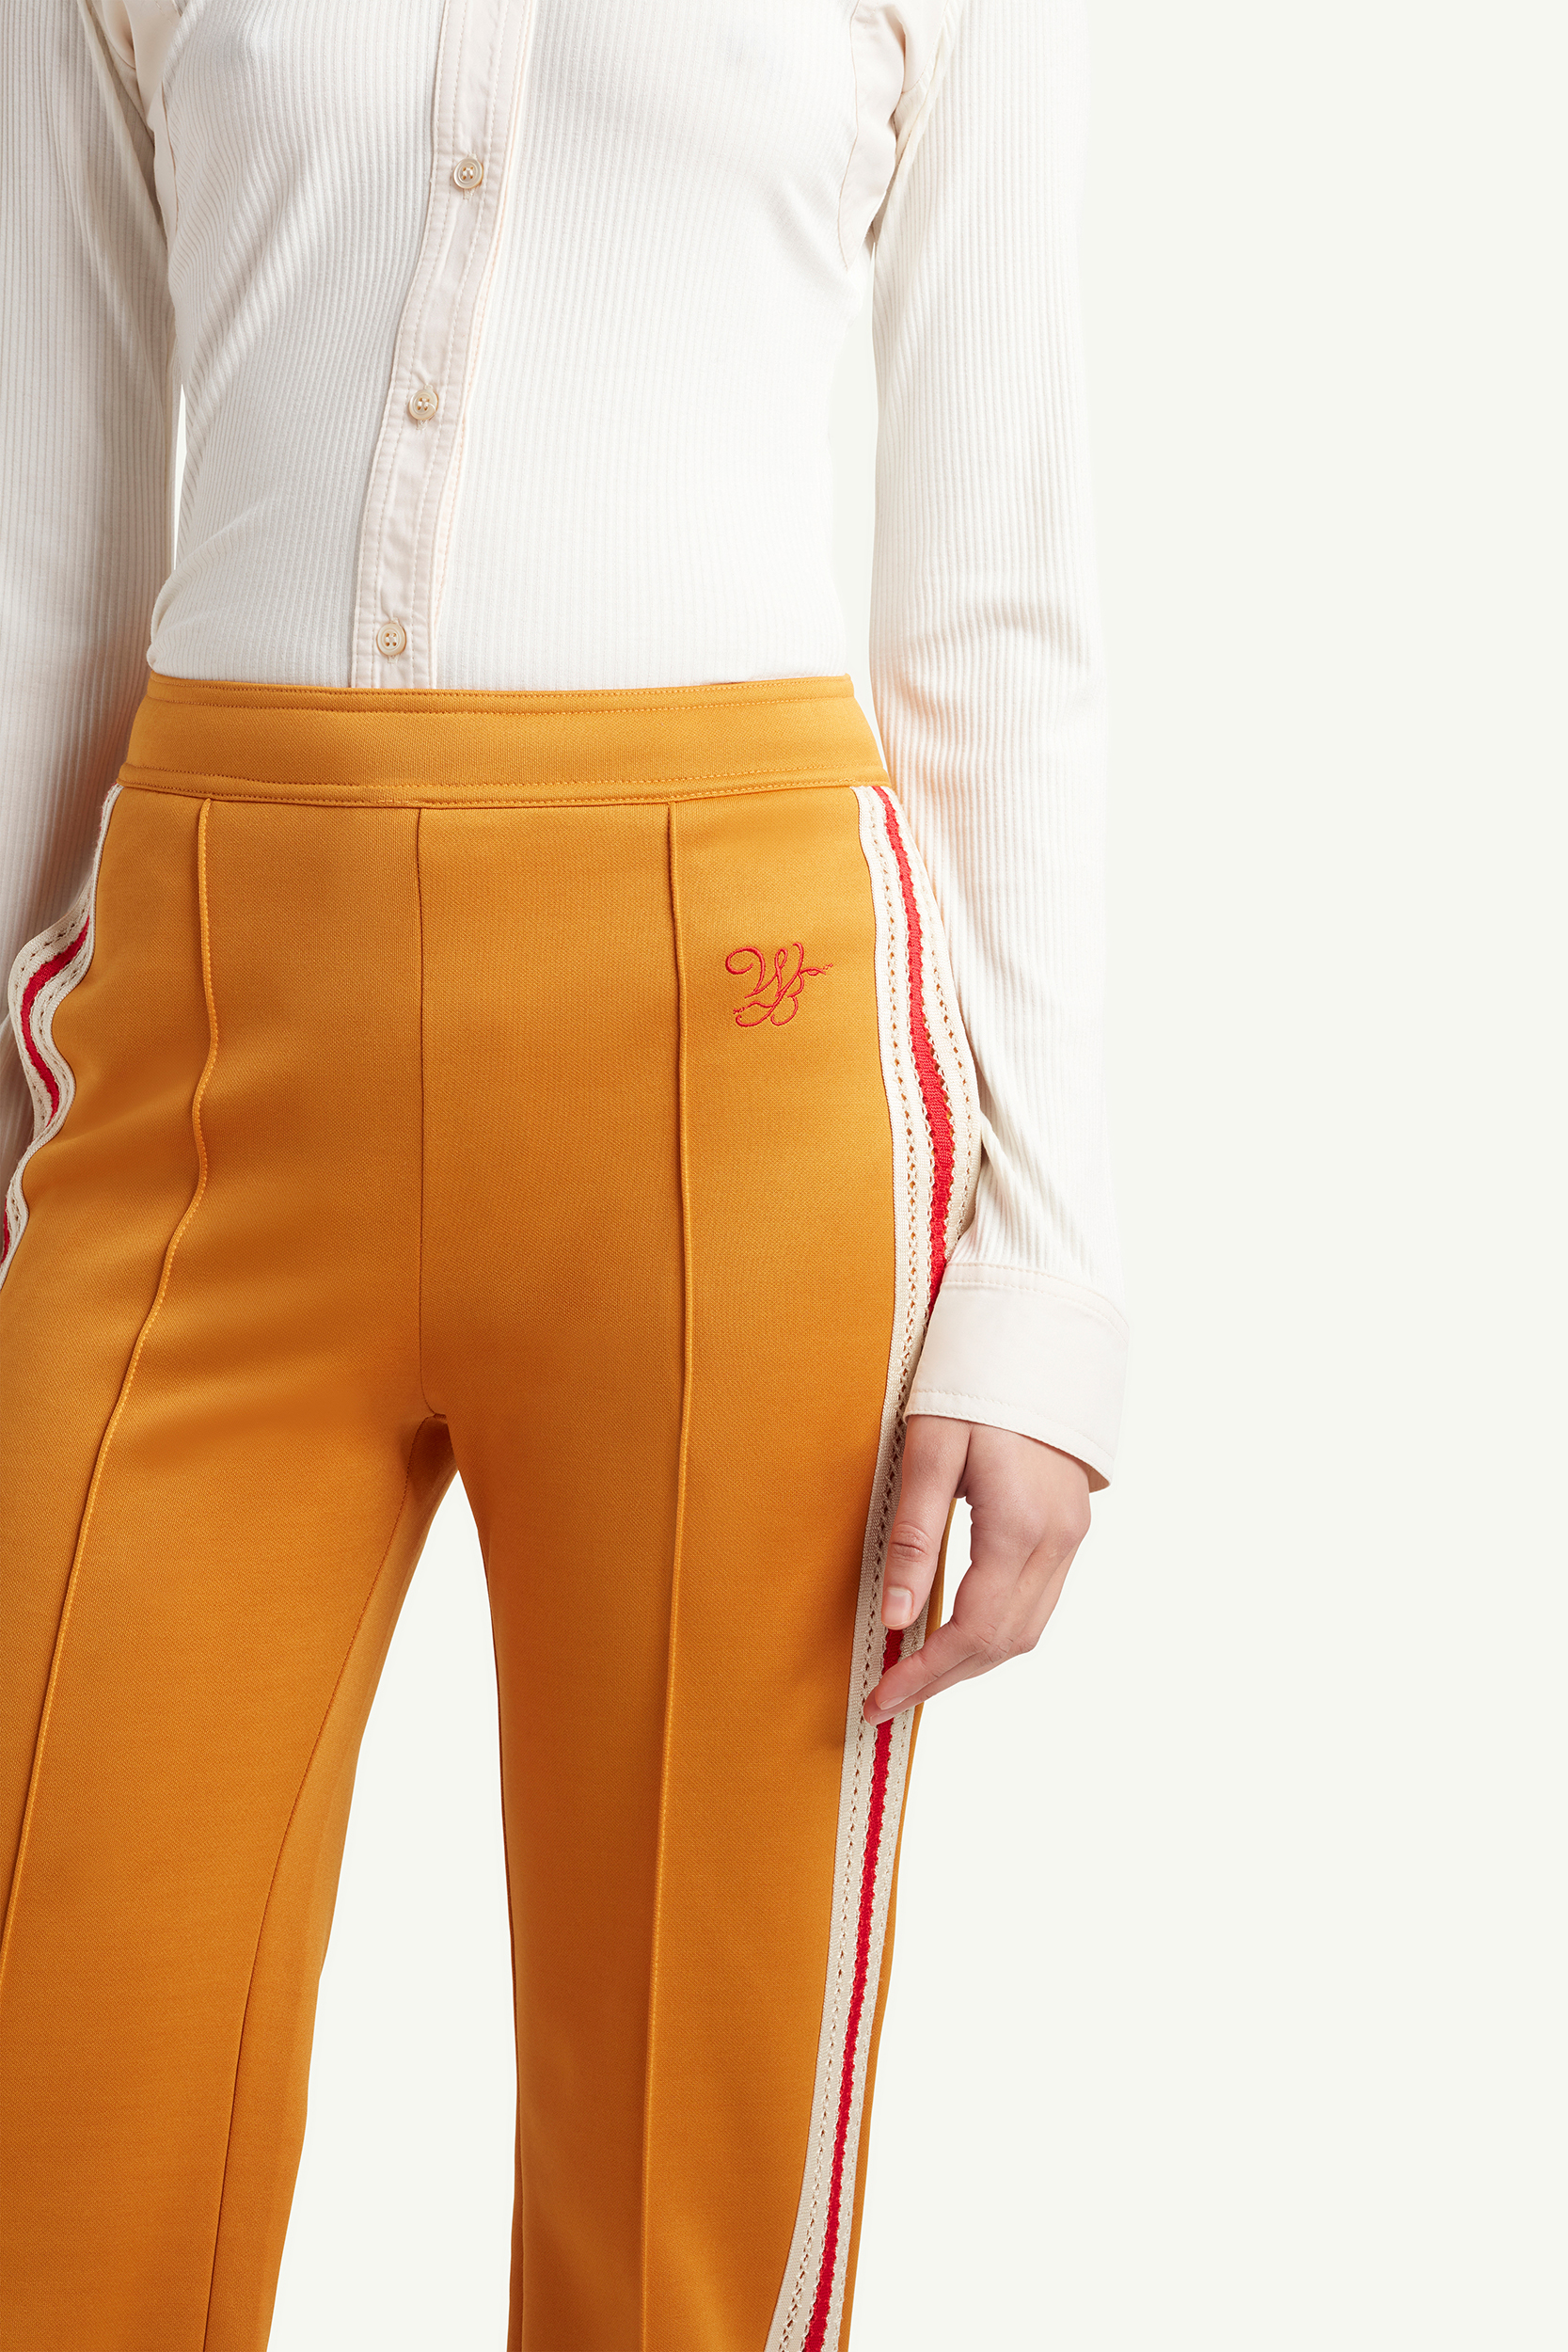 detail shot of the mustard yellow Wales Bonner tracksuit trousers with red and blue line detailing and white long sleeve top